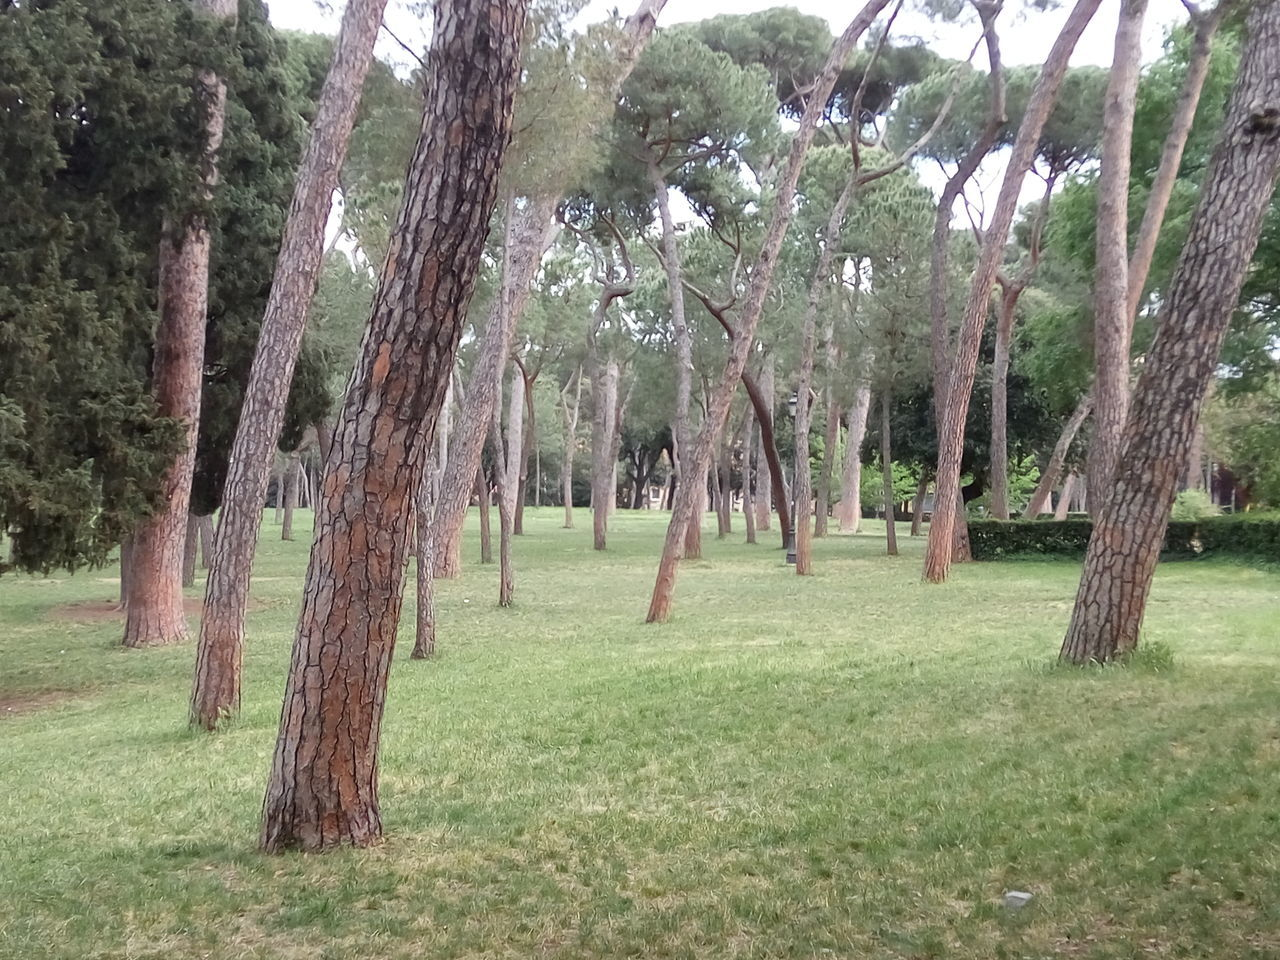 Tree Growth Nature Beauty In Nature Tree Trunk Grass Outdoors Tranquil Scene Landscape No People Villa Borghese Park Rome Italy🇮🇹